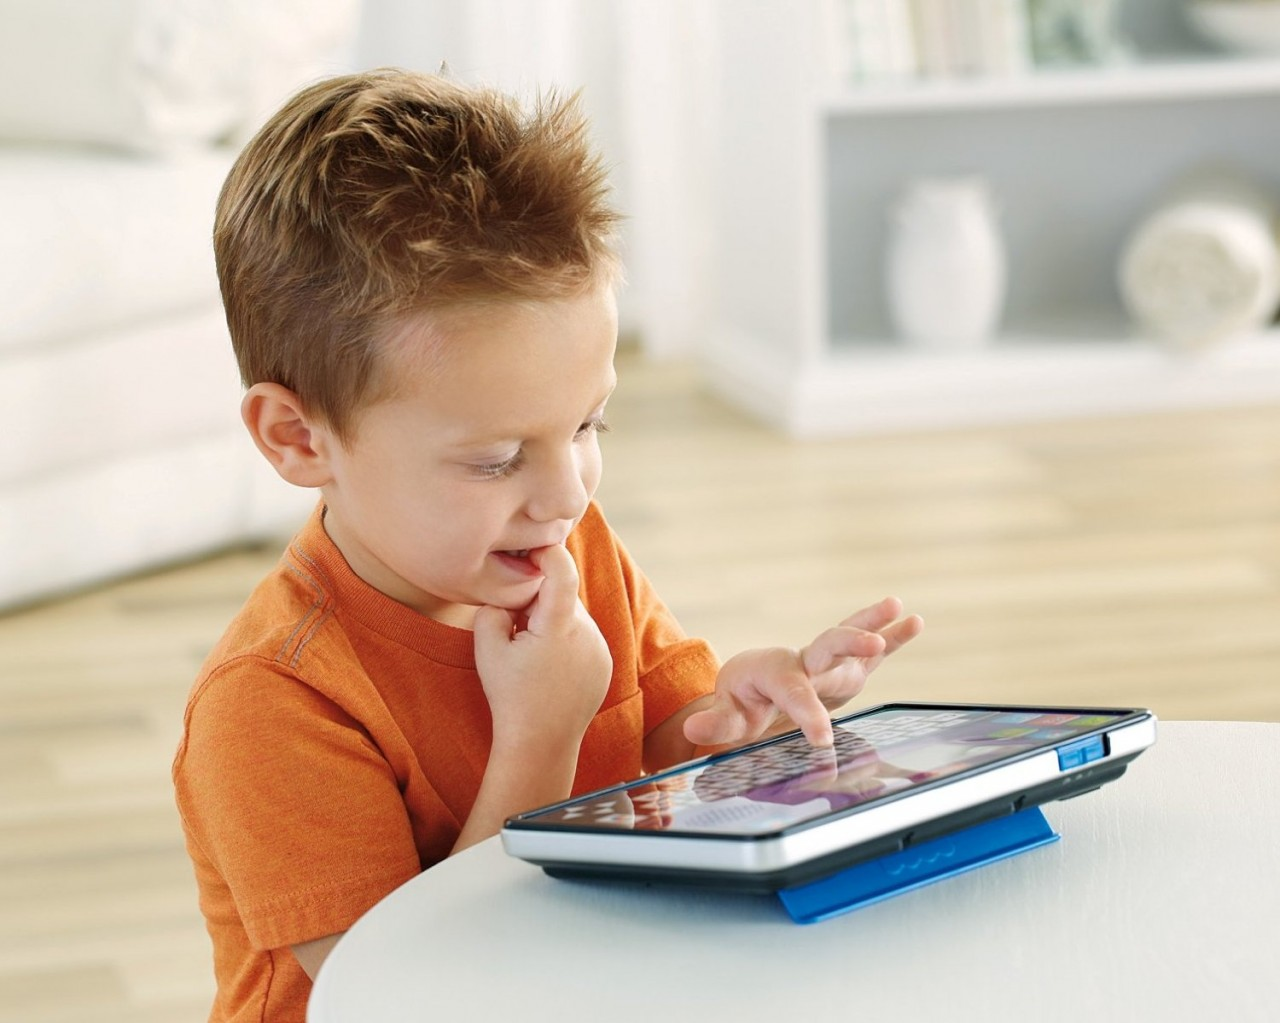 Tablets y salud visual infantil